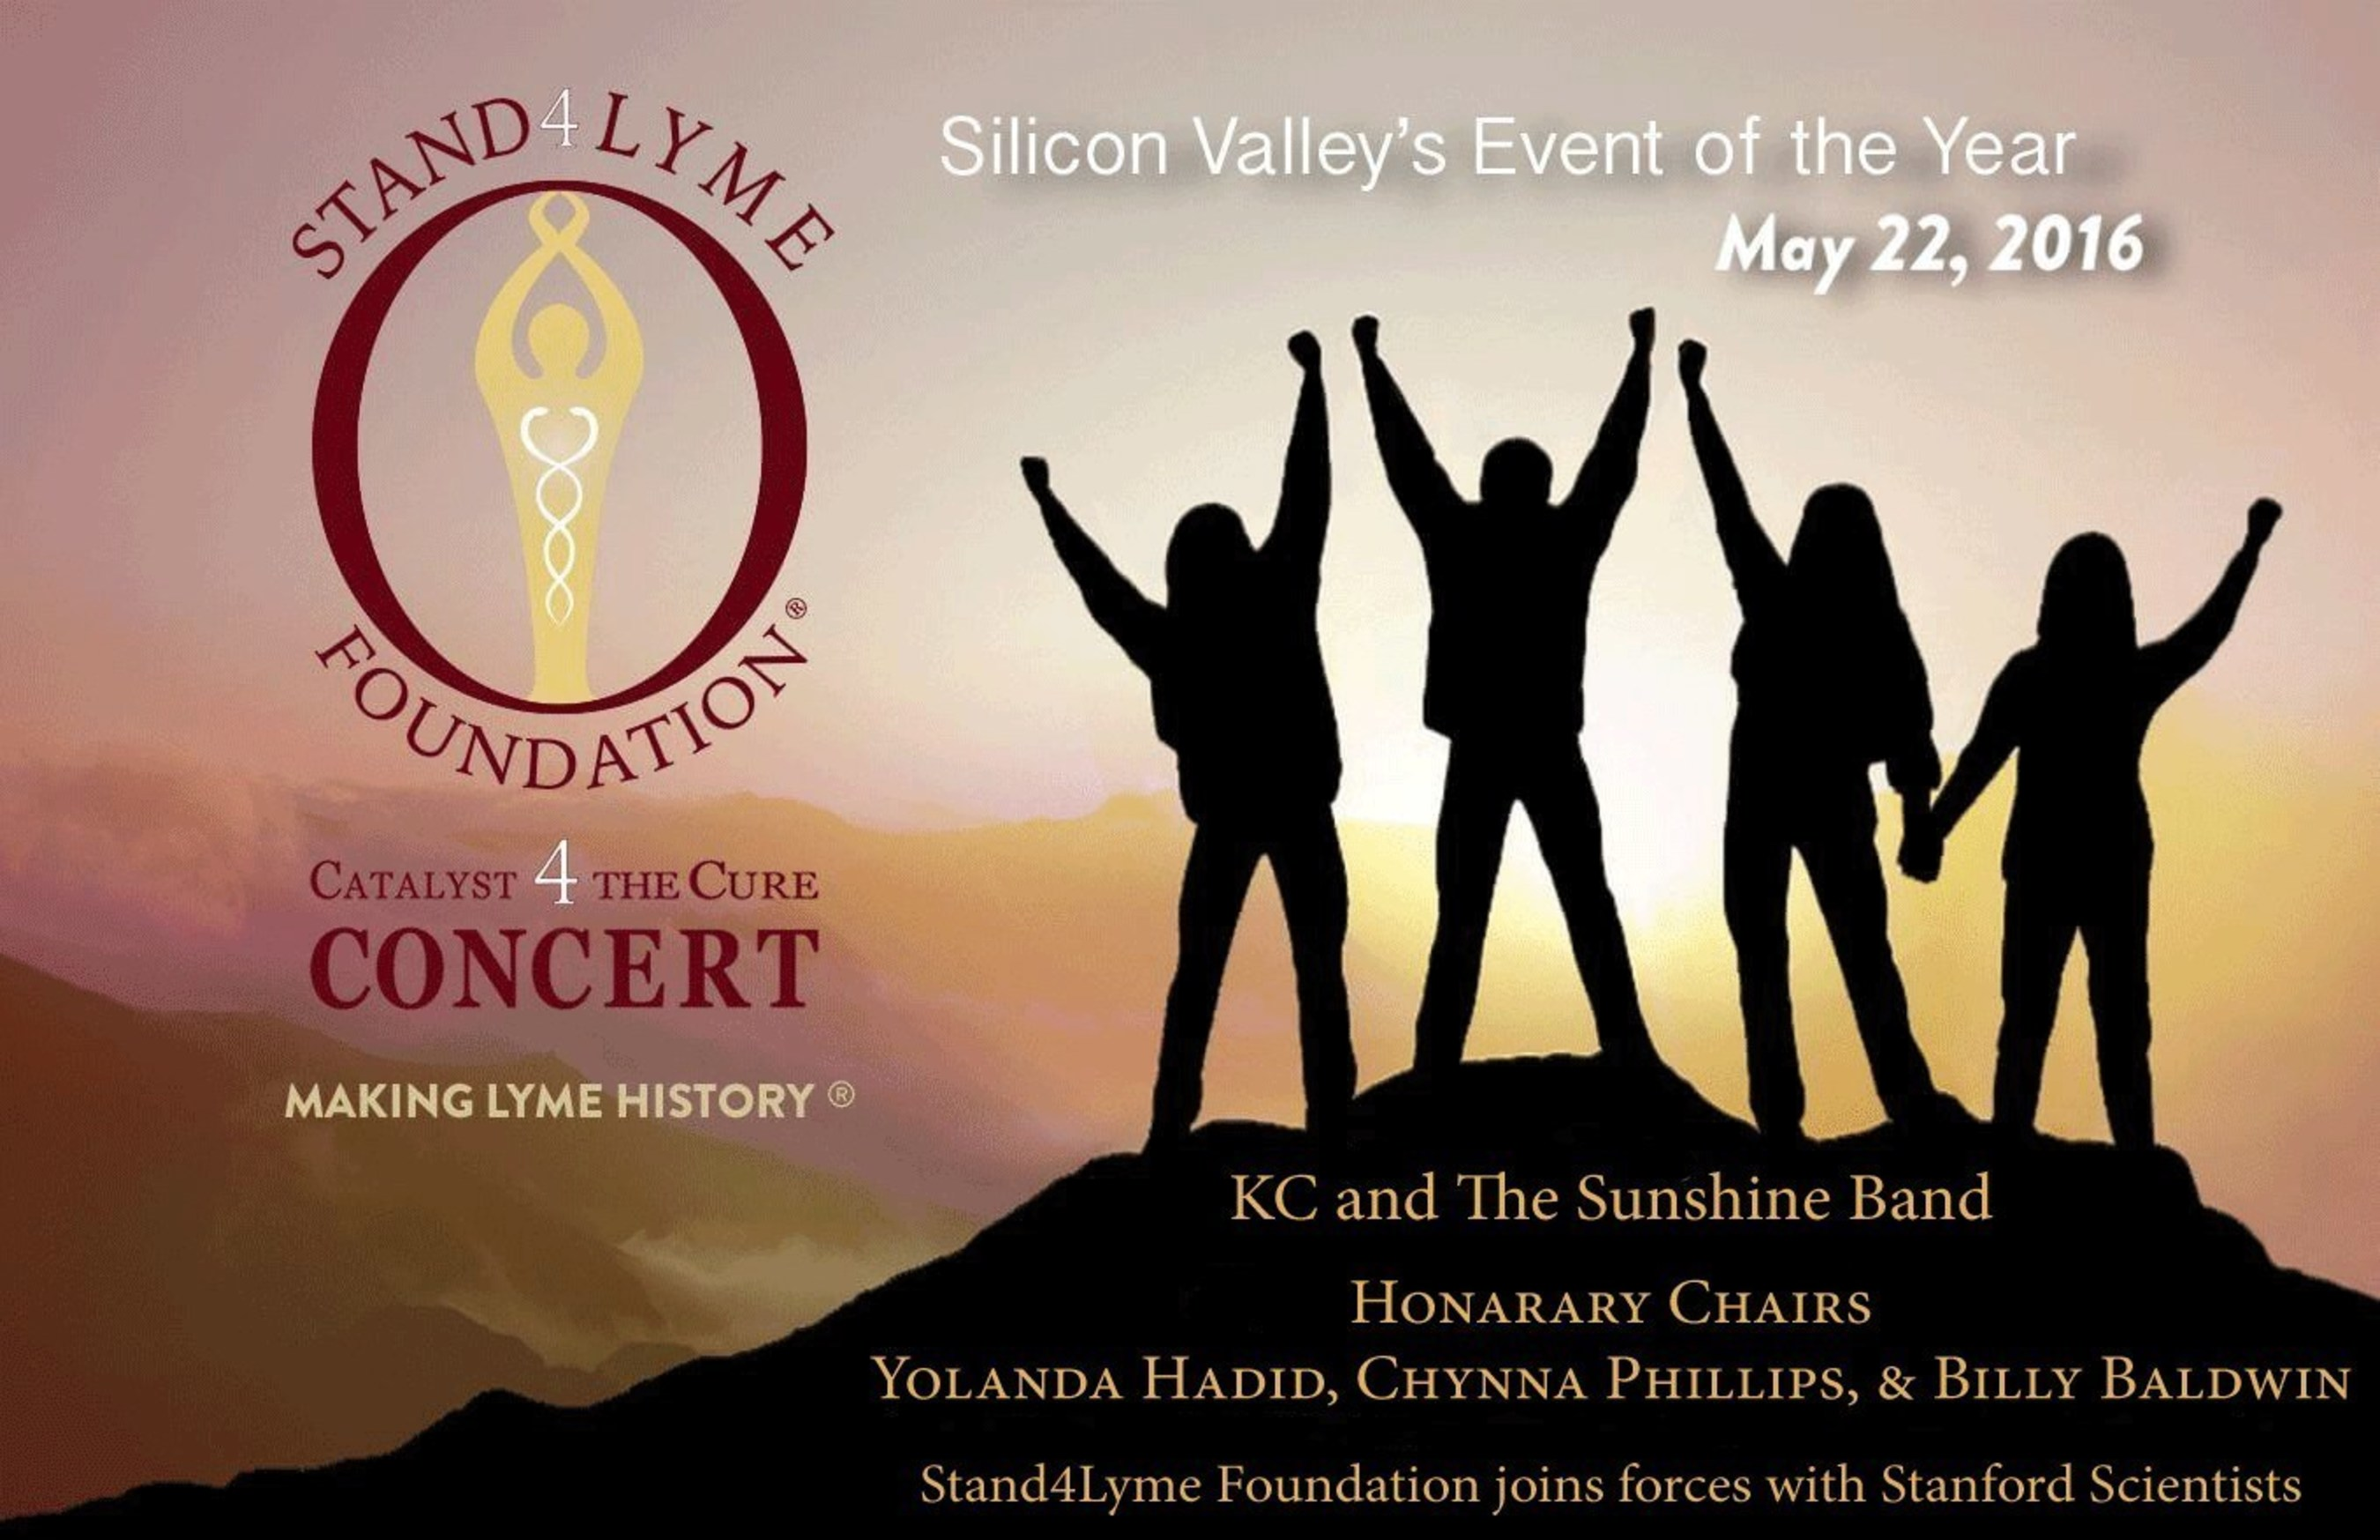 Stand4Lyme's Catalyst 4 The Cure concert